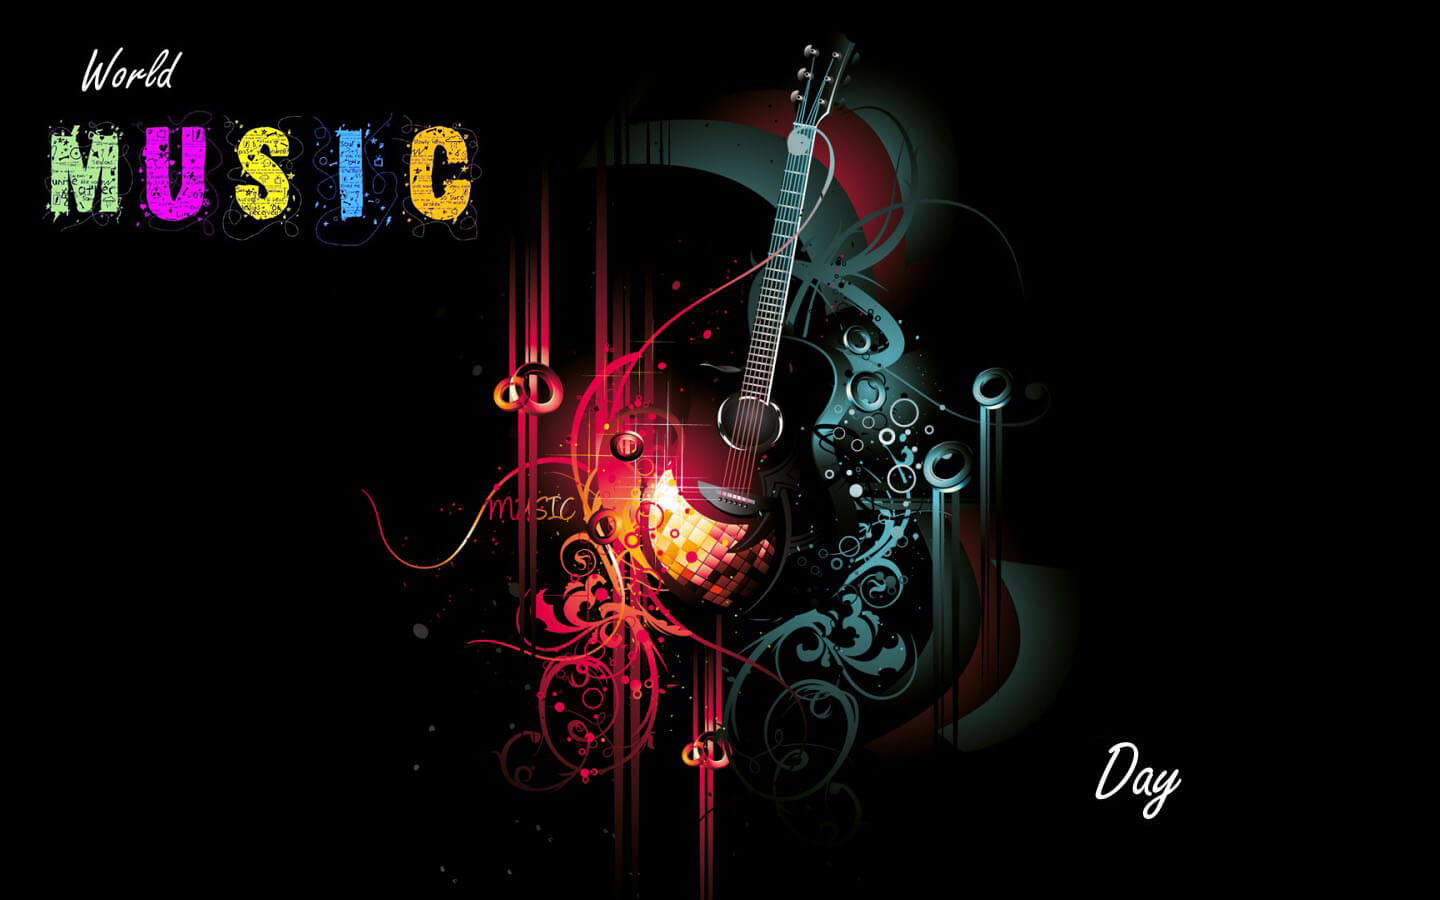 happy world music day 3d hd guitar wallpaper